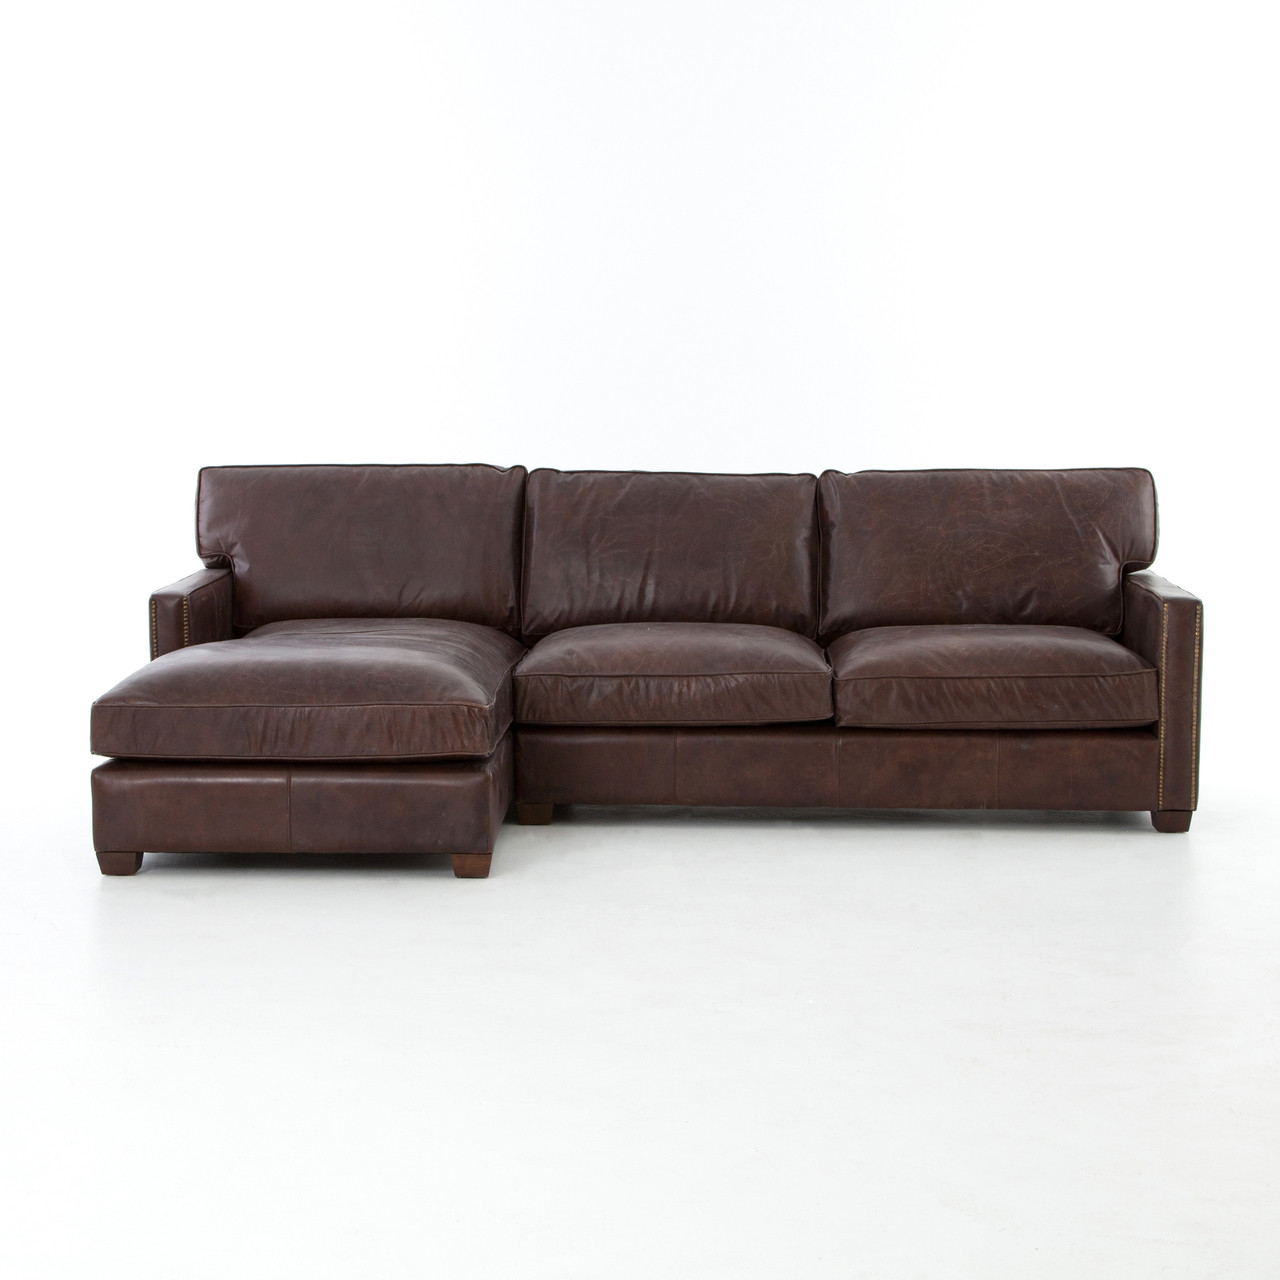 vintage leather sectional sofa wooden set designs with low price larkin cigar chaise